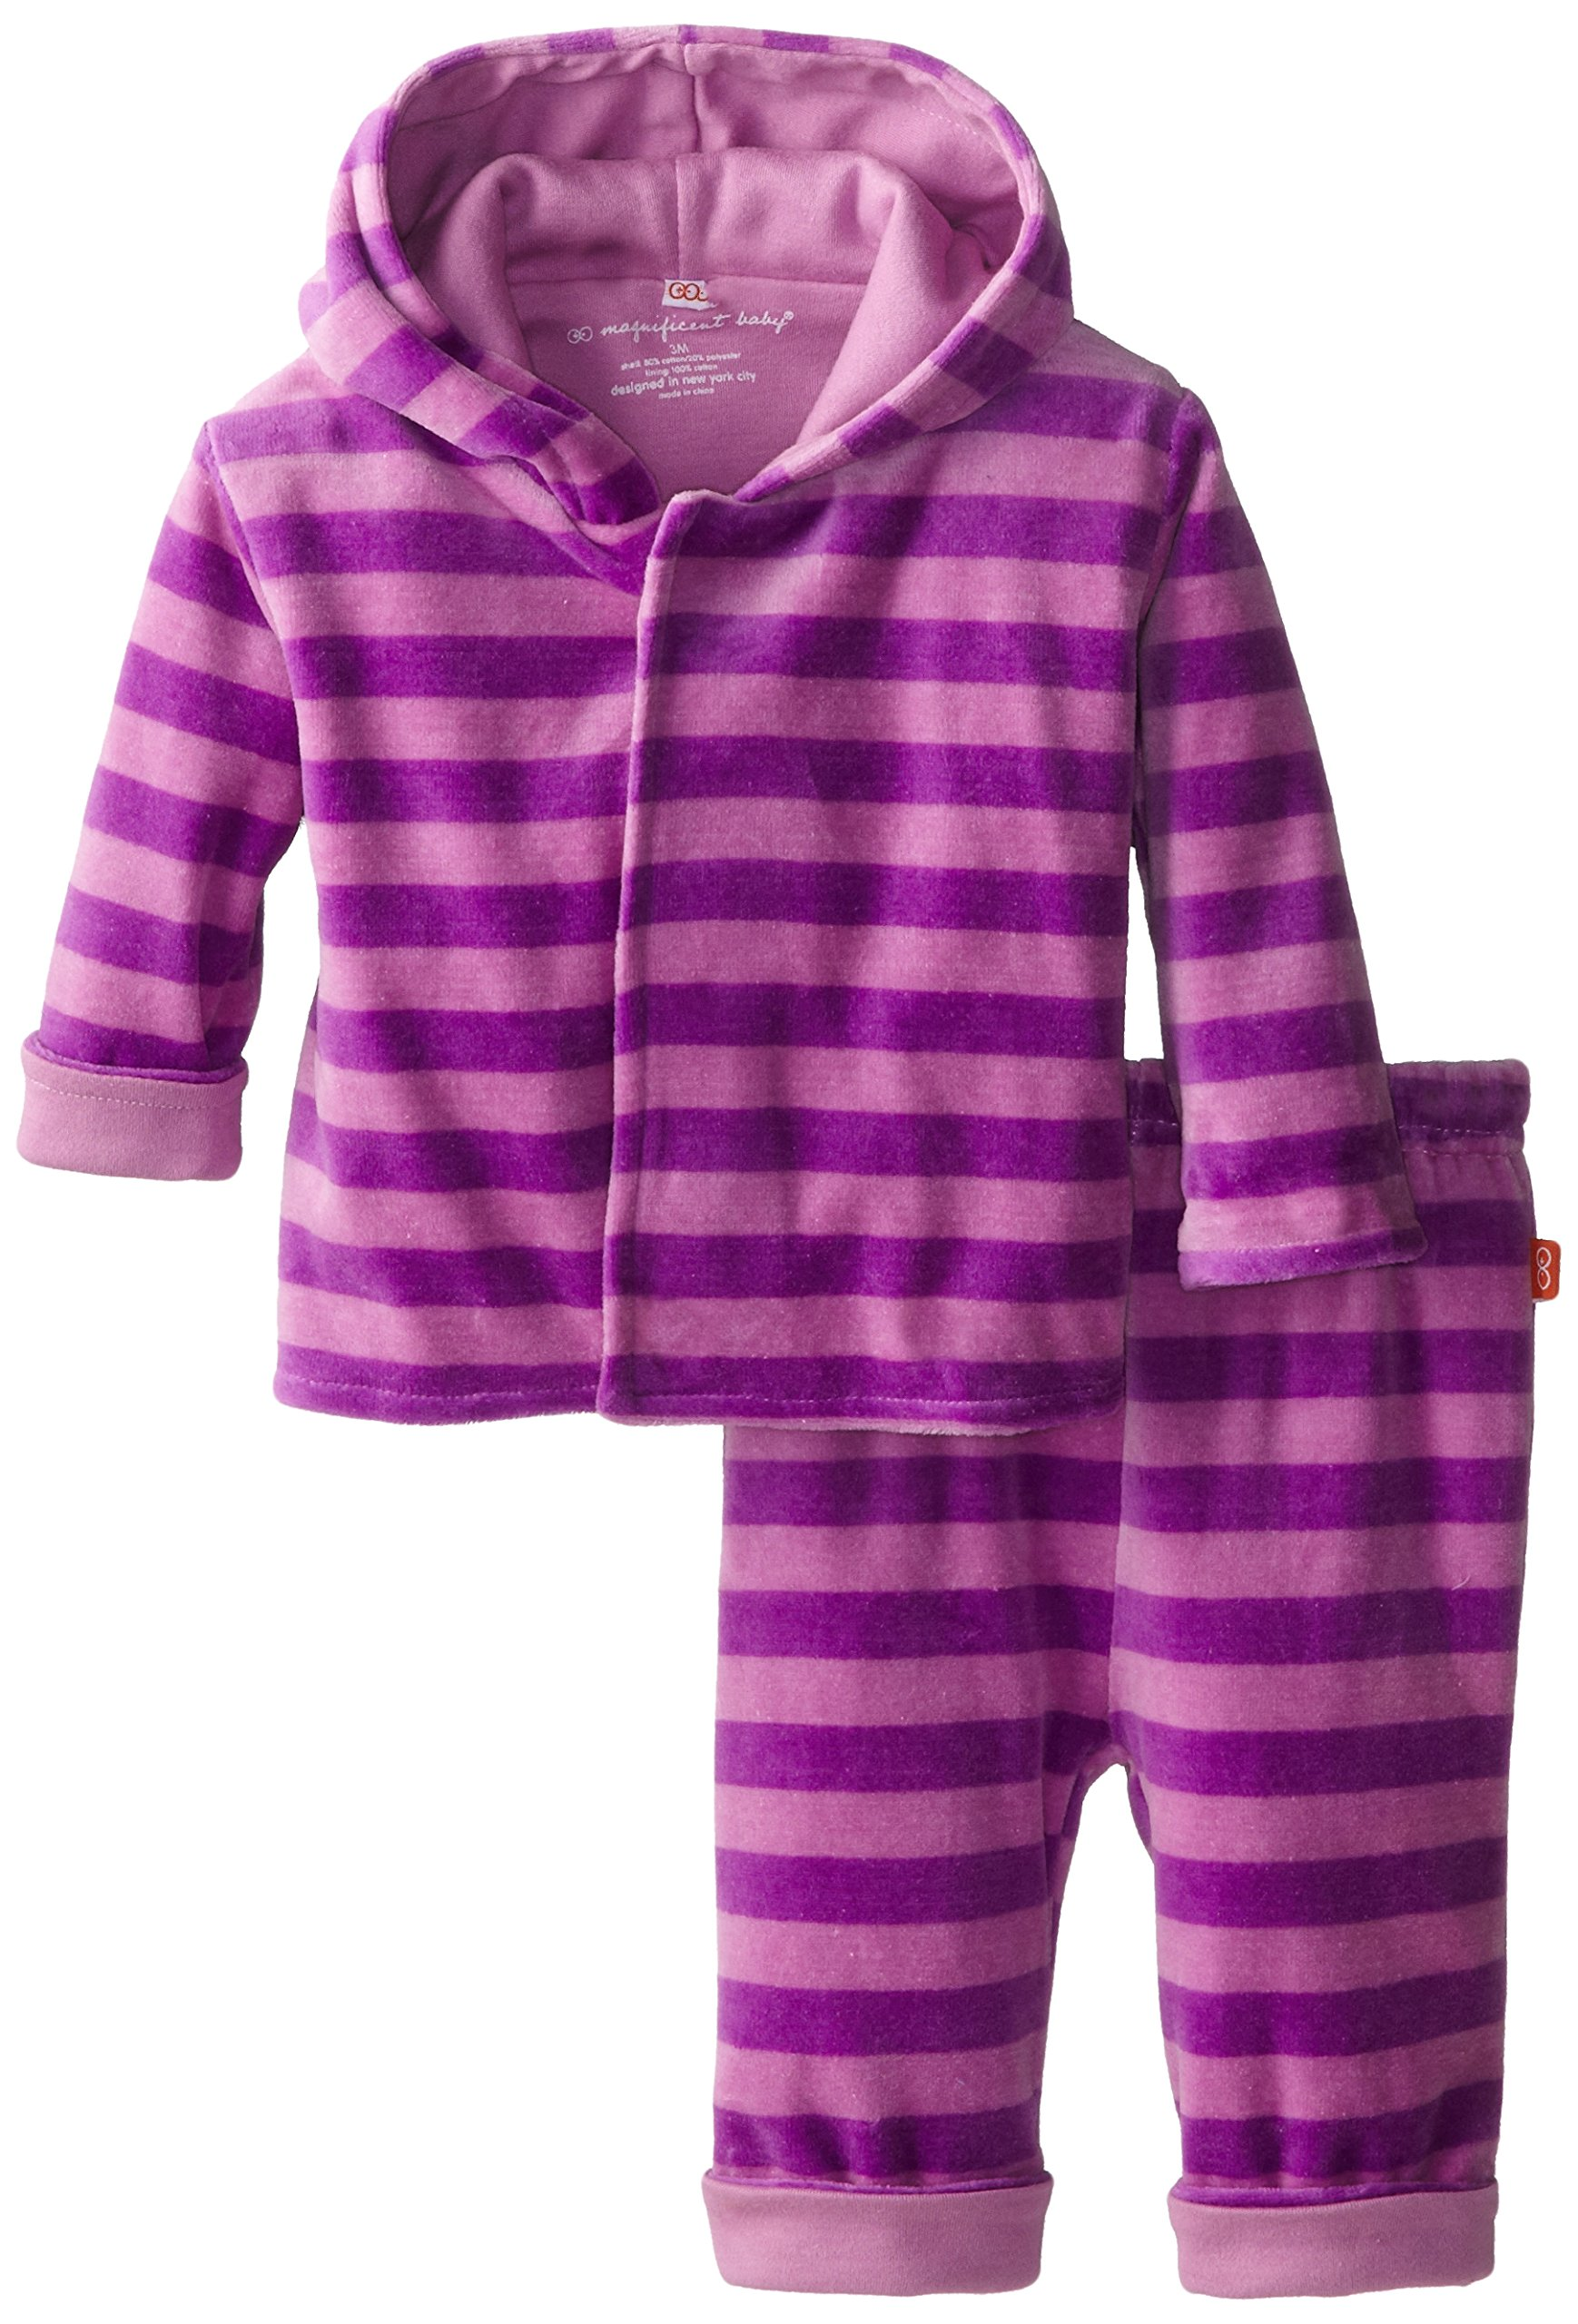 Magnificent Baby Baby Girls' Velour Hoodie and Pants, Pink/Lavender, 2T by Magnificent Baby